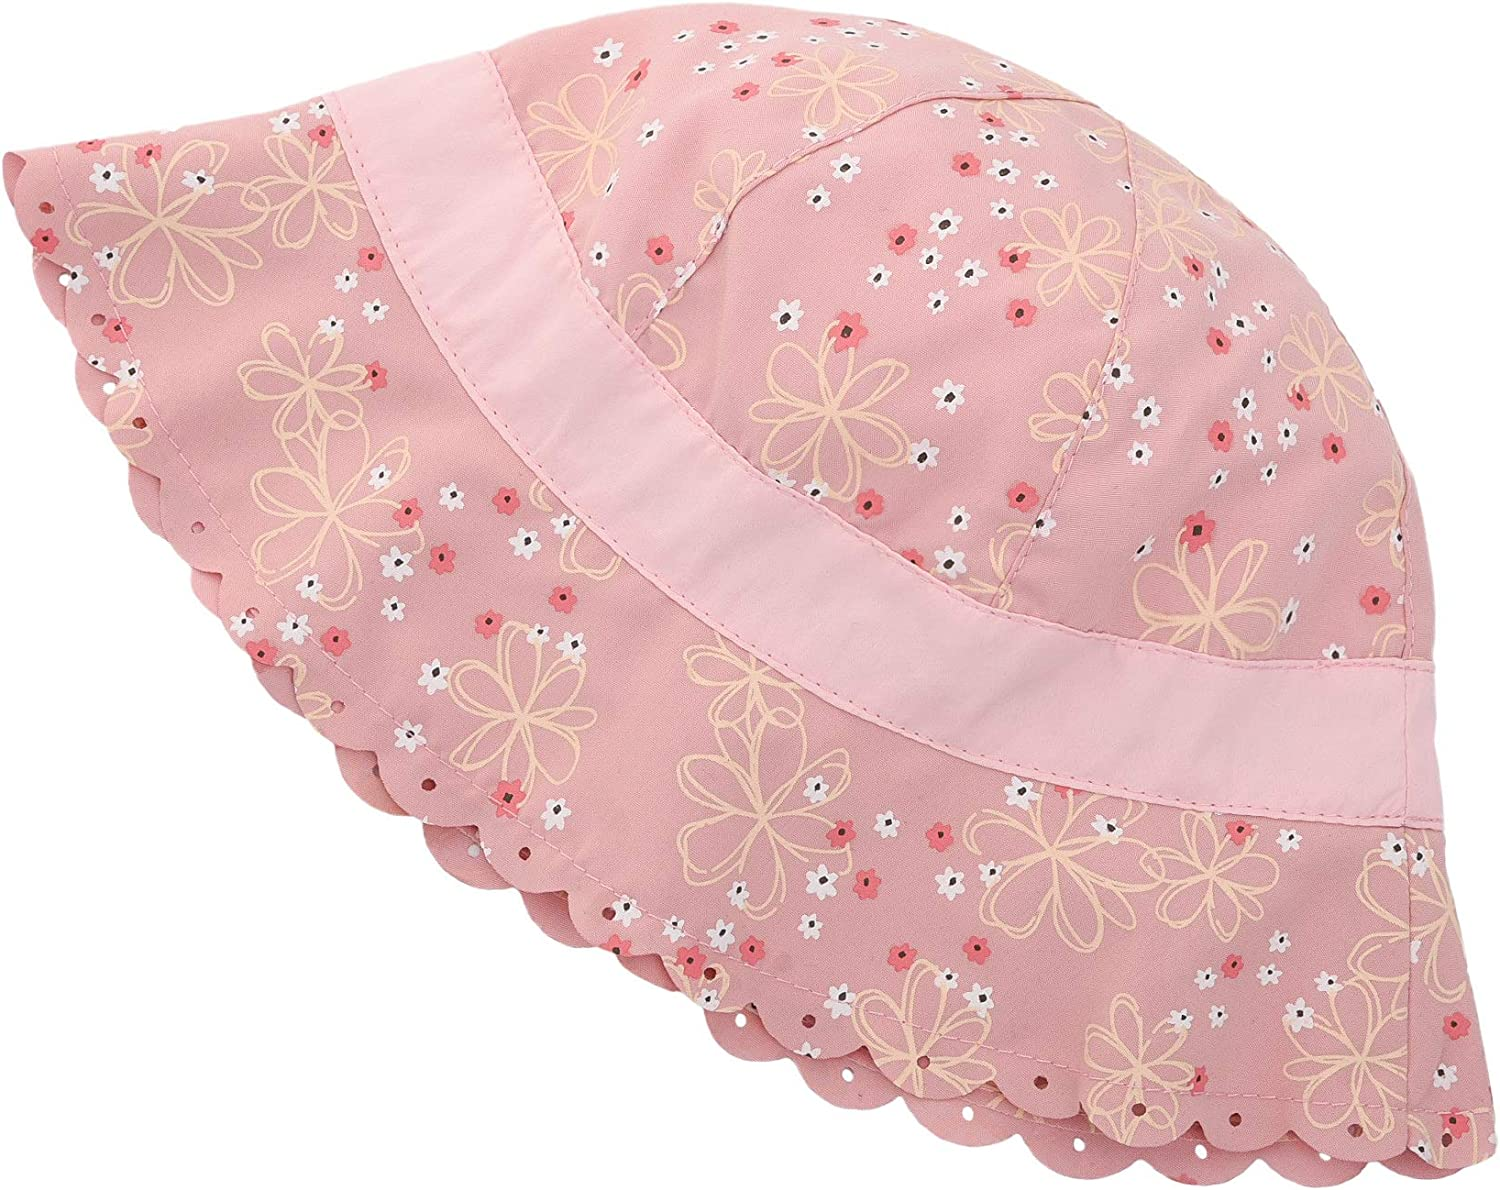 ERISO Baby Girl Sun Hat Bowknot Bucket Hats for Infant Toddler Summer Sun Protection